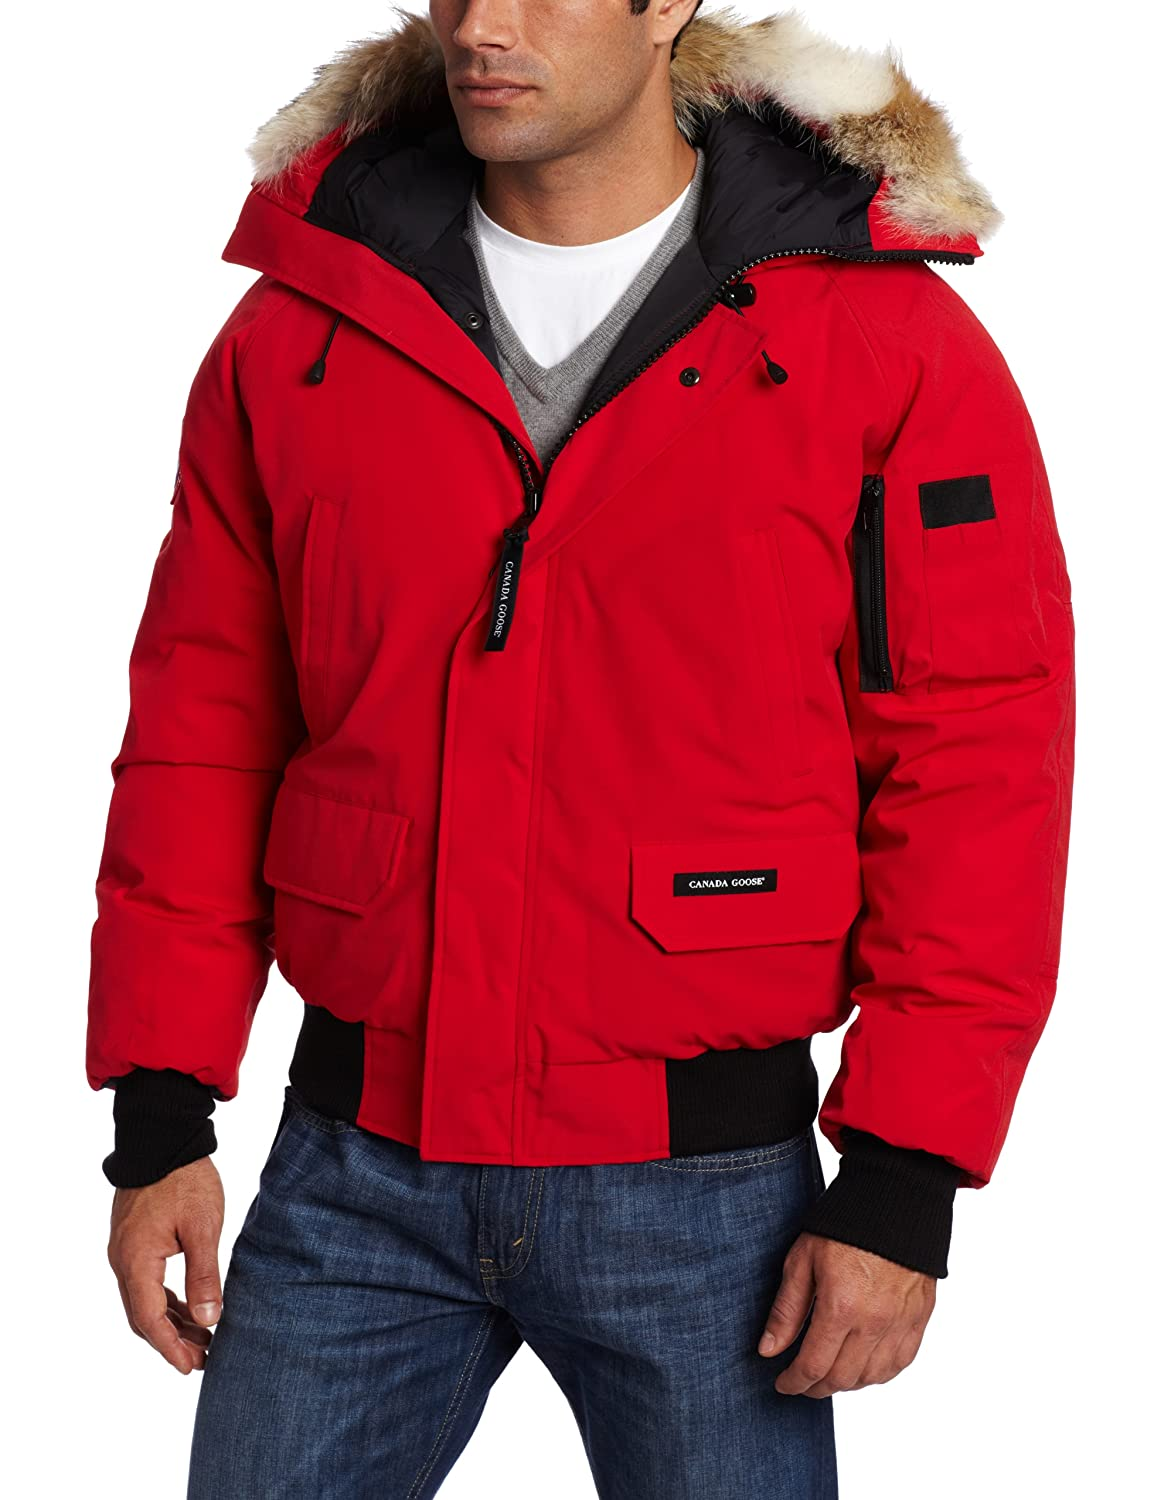 price for real canada goose jackets in ottawa